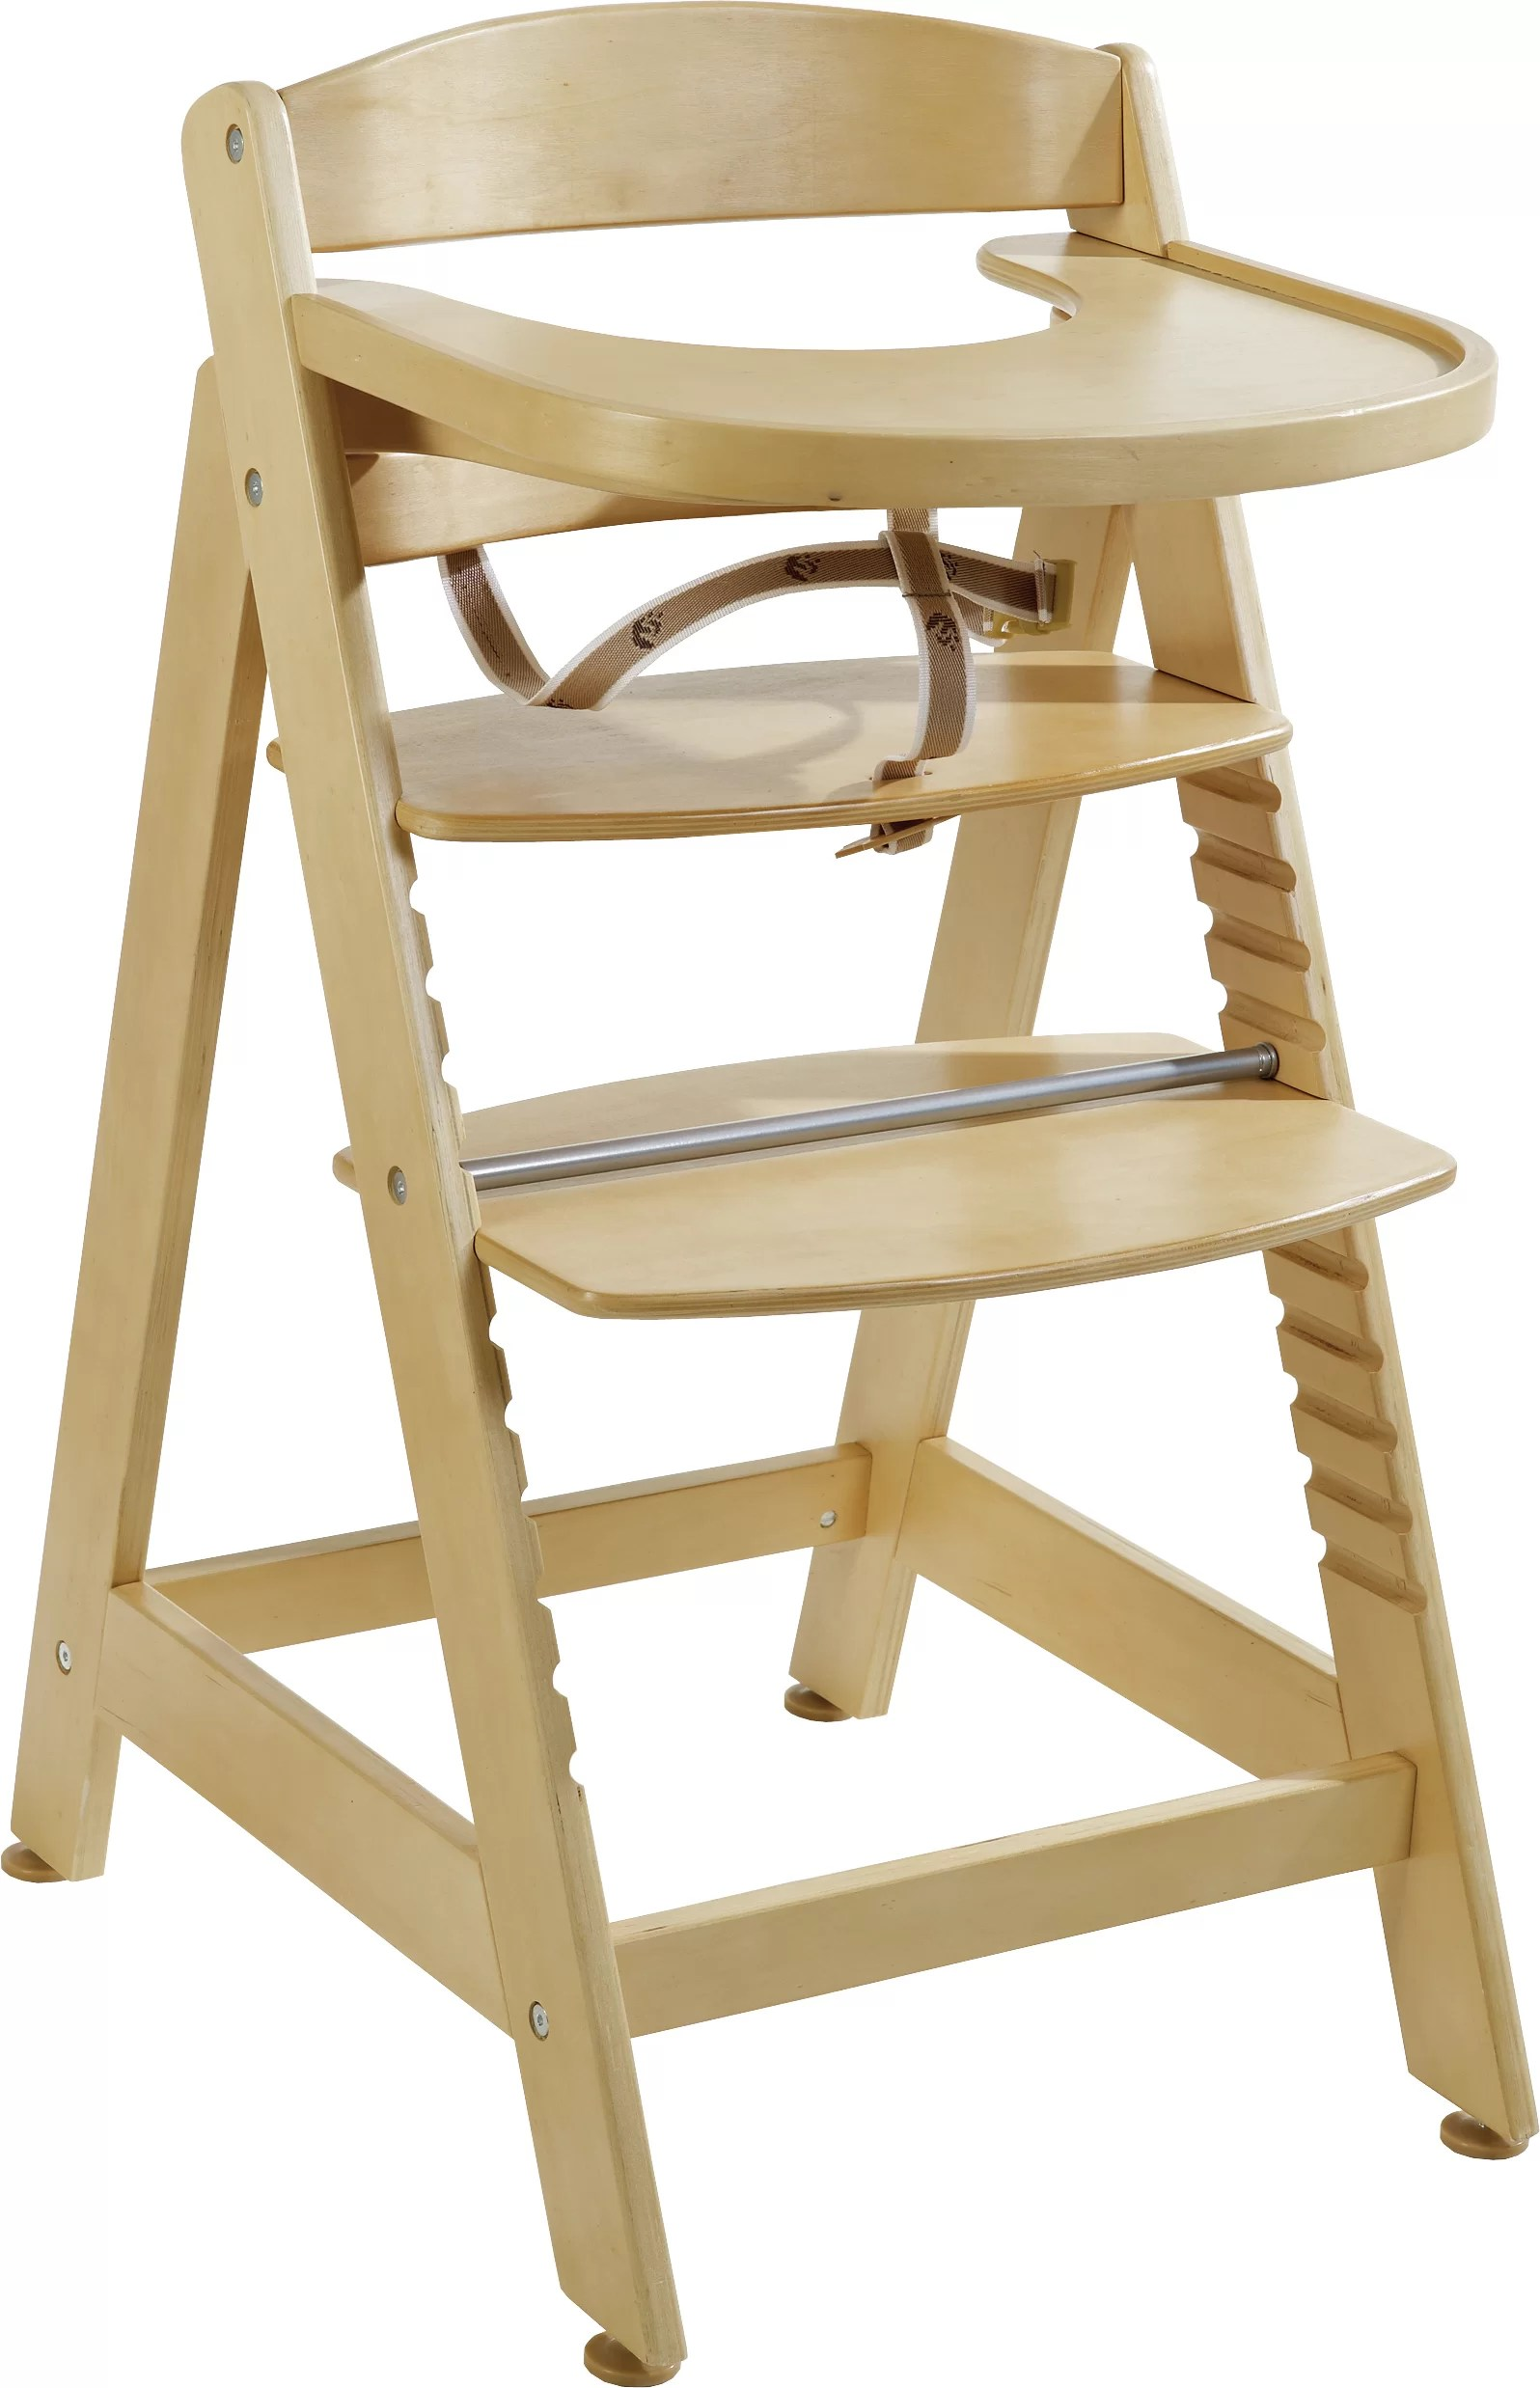 Chair High Chair Sit Up High Chair